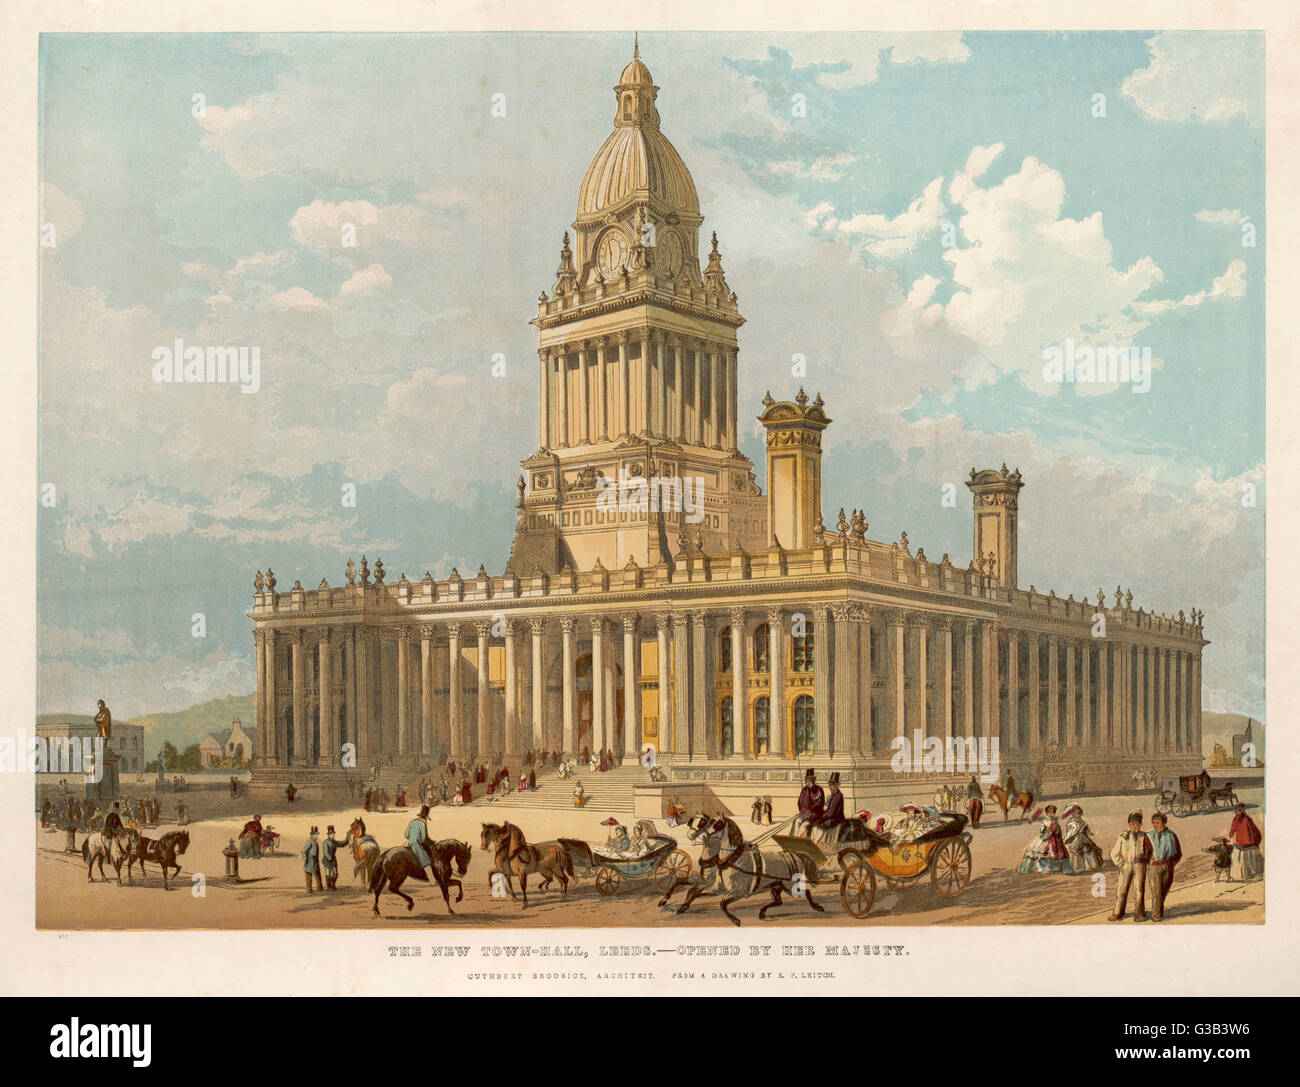 Leeds, Yorkshire:  the Town Hall (architect Cuthbert Brodrick)       Date: 1858 - Stock Image